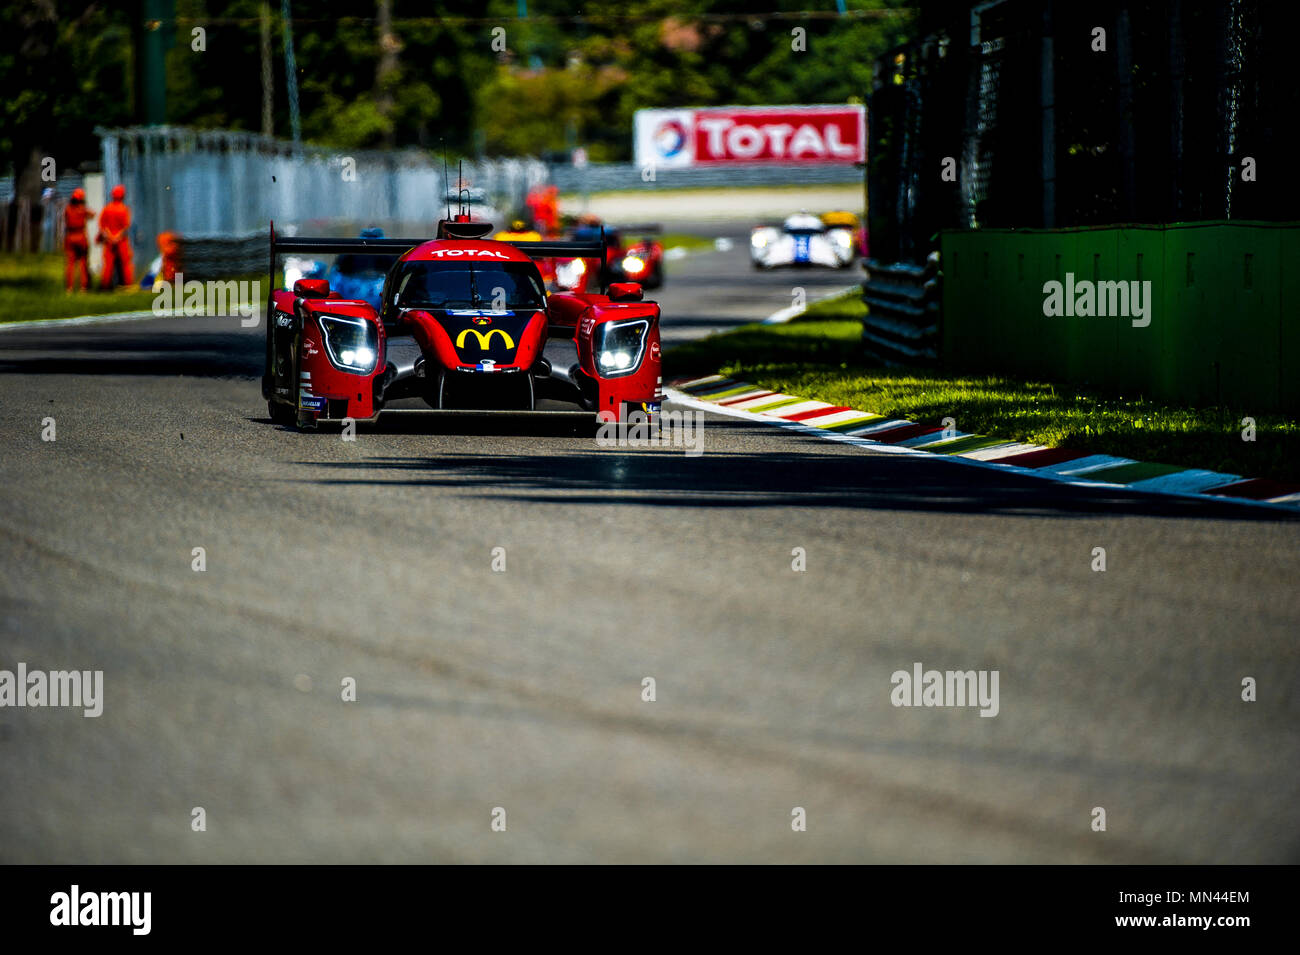 EUROPEAN LE MANS SERIES 2018 SECOND ROUND MONZA Stock Photo